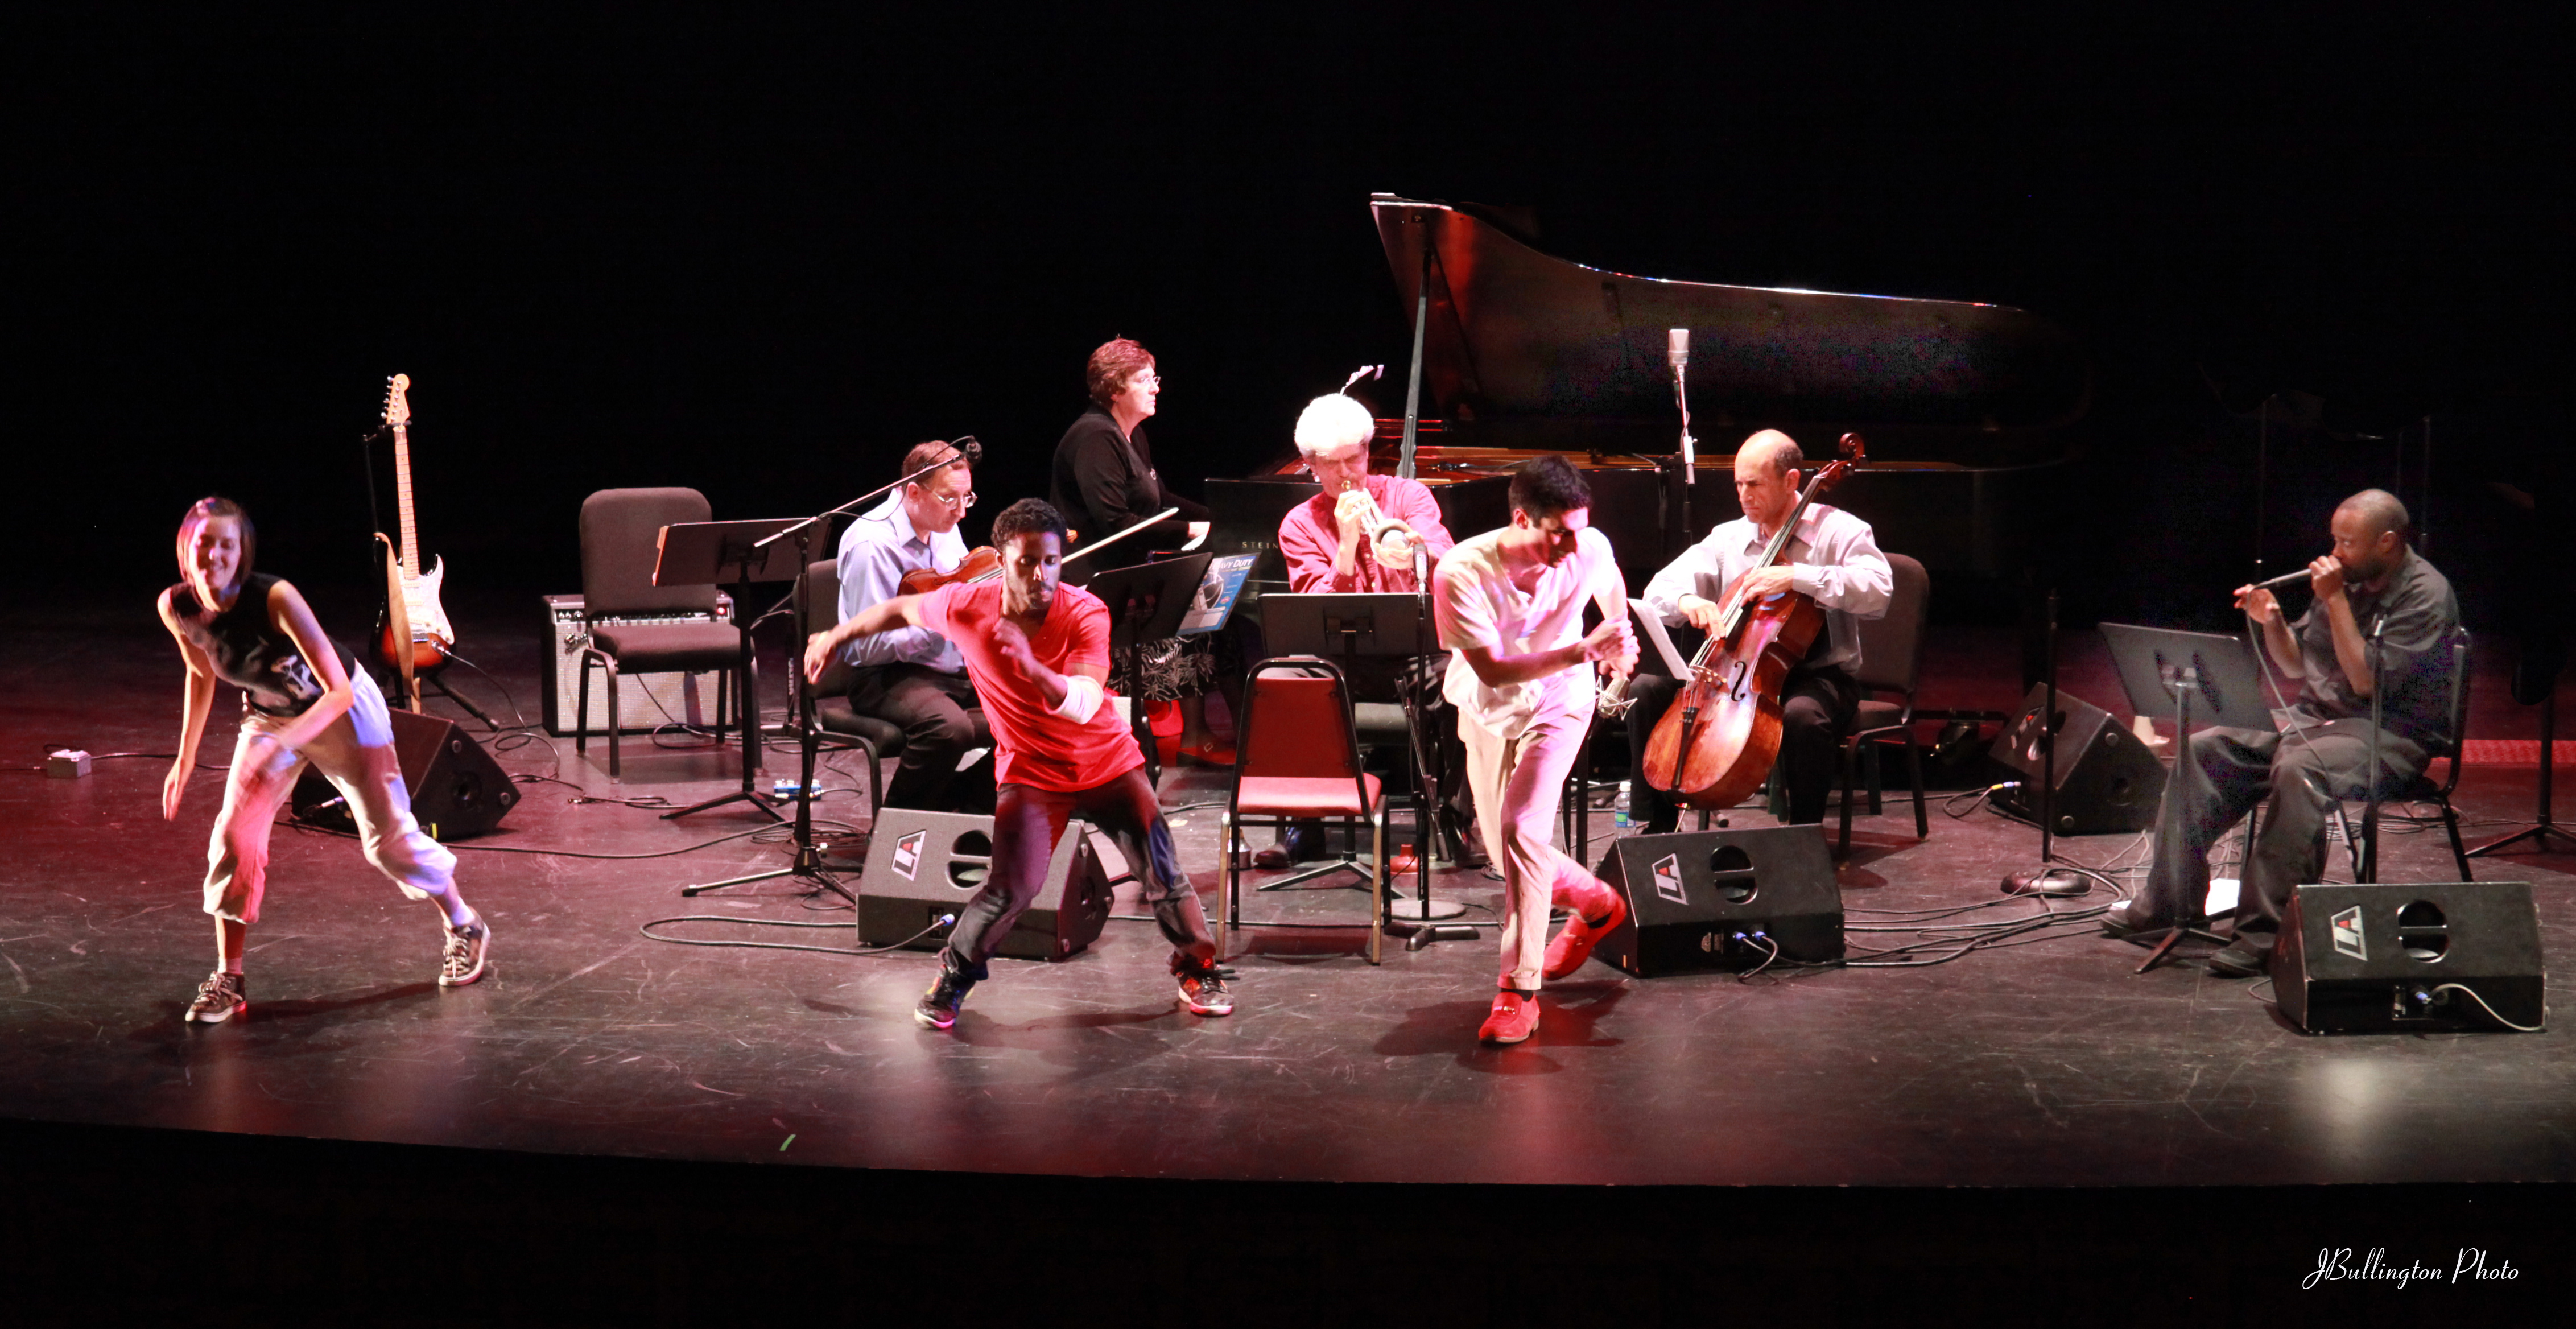 Kandinsky Beat Down performs on stage